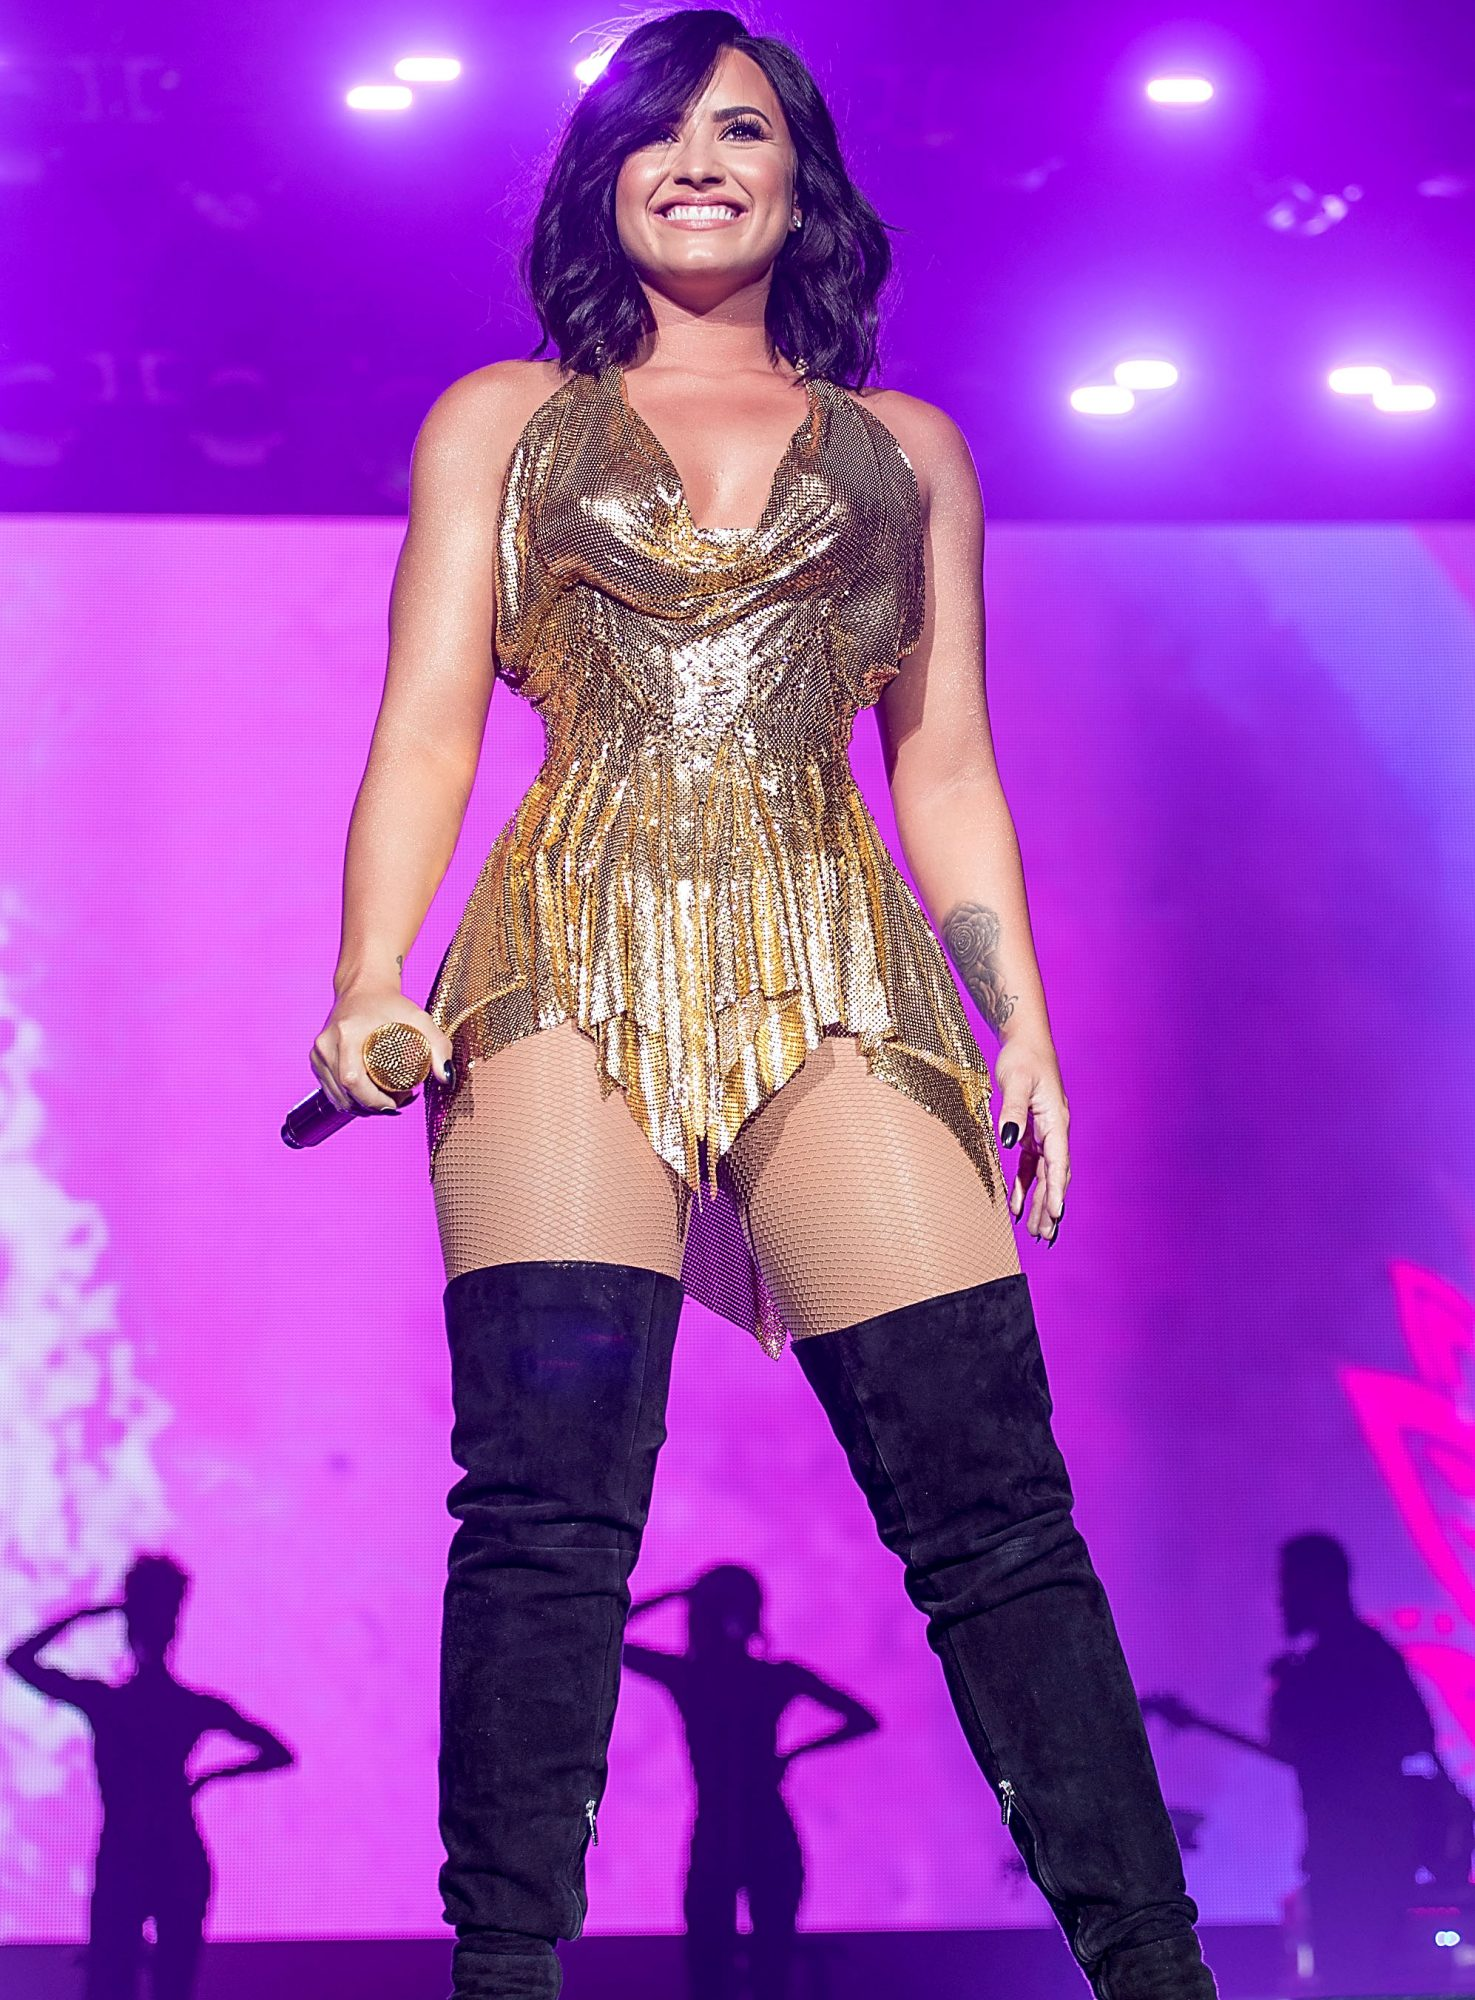 Demi Lovato Is Fine with Not Having a Thigh Gap: 'I'm Still Beautiful the Way I Am'